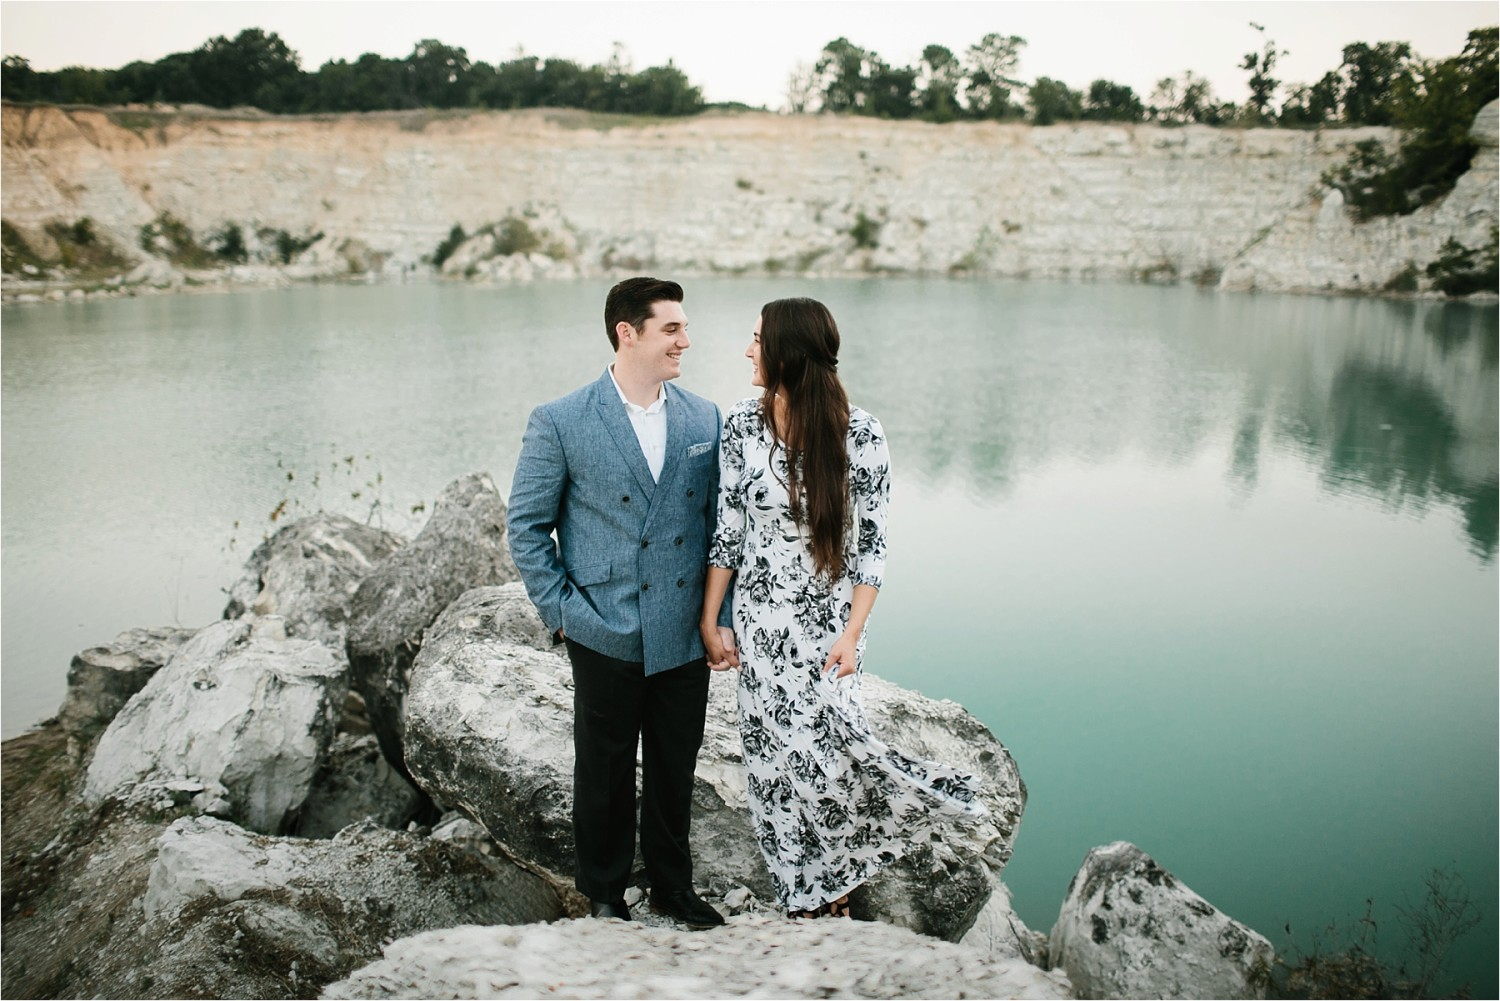 an-intimate-sunrise-session-by-north-texas-wedding-photographer-rachel-meagan-photography-_-08